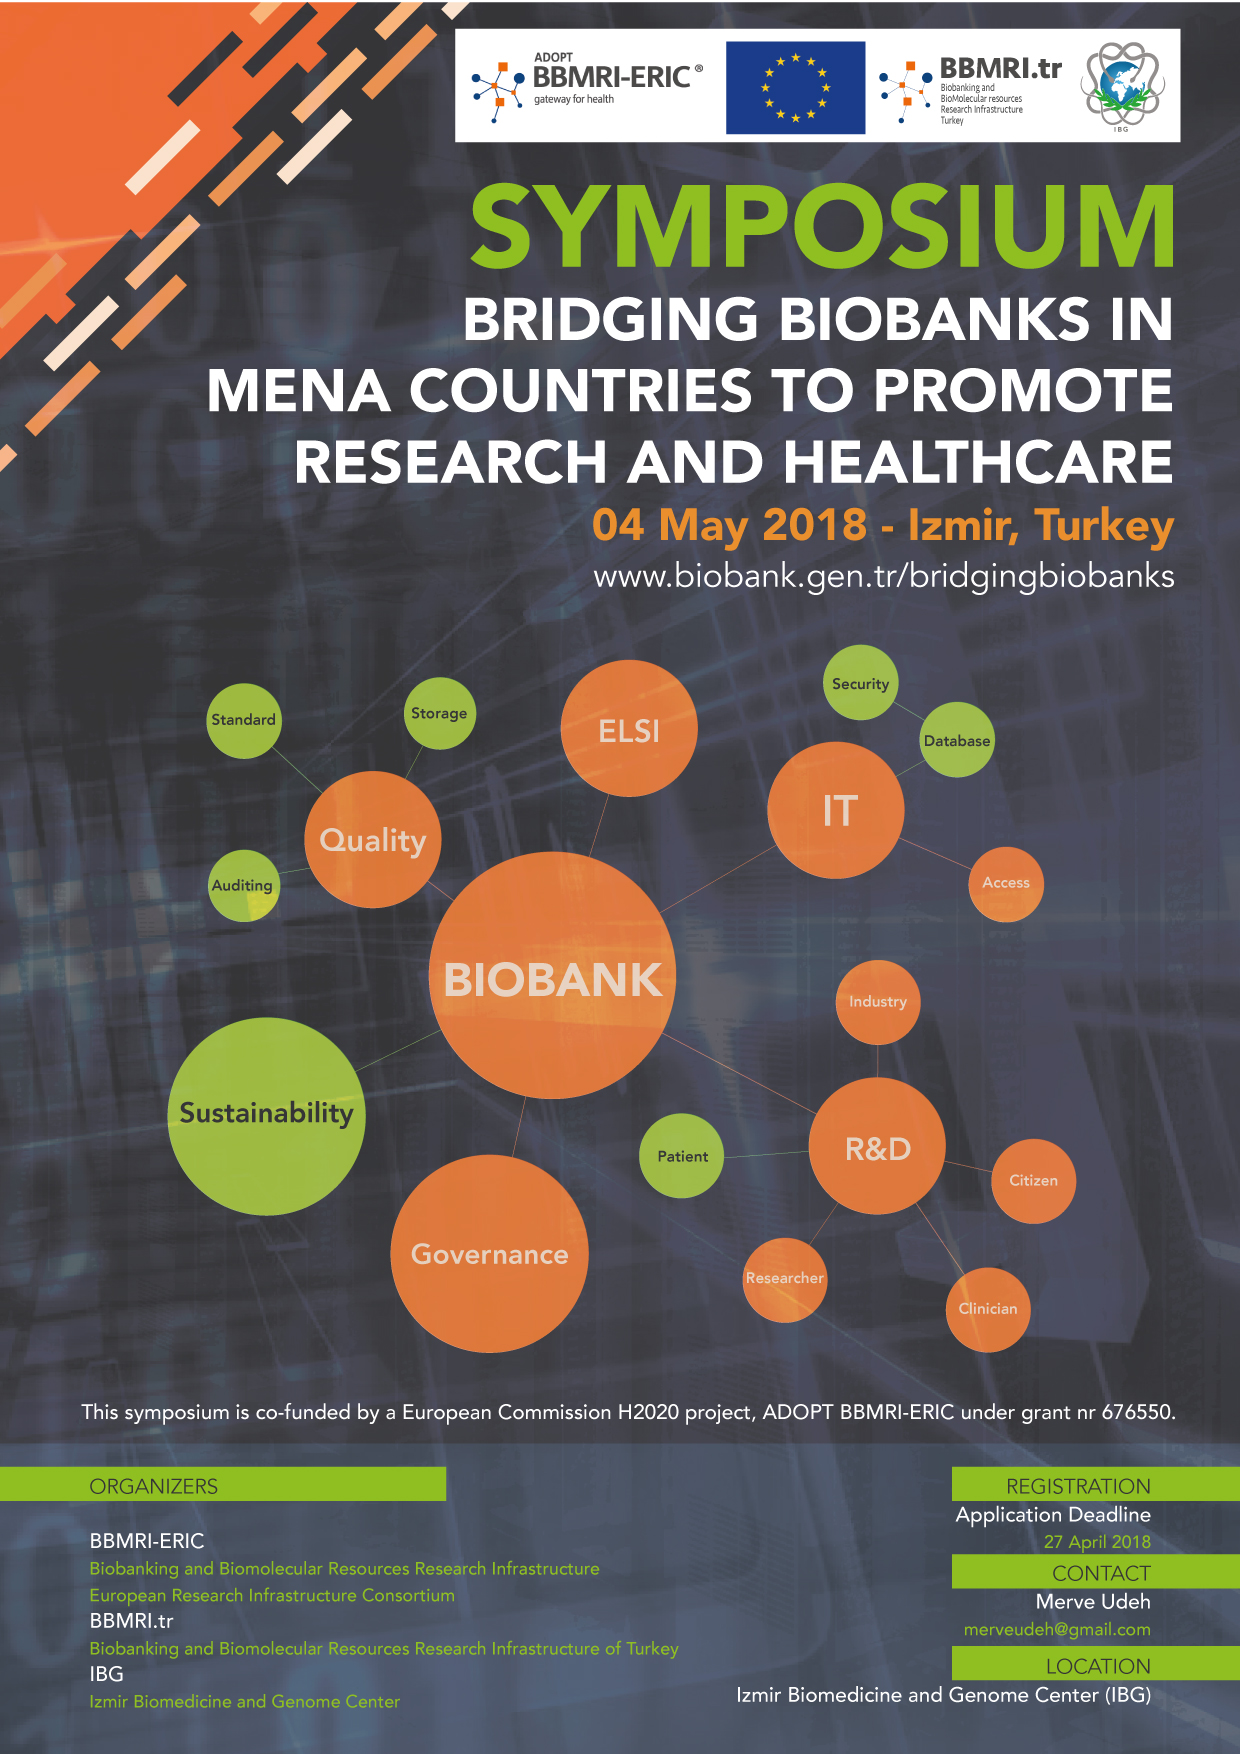 Bridging Biobanks in MENA Countries to Promote Research and Healthcare Symposium